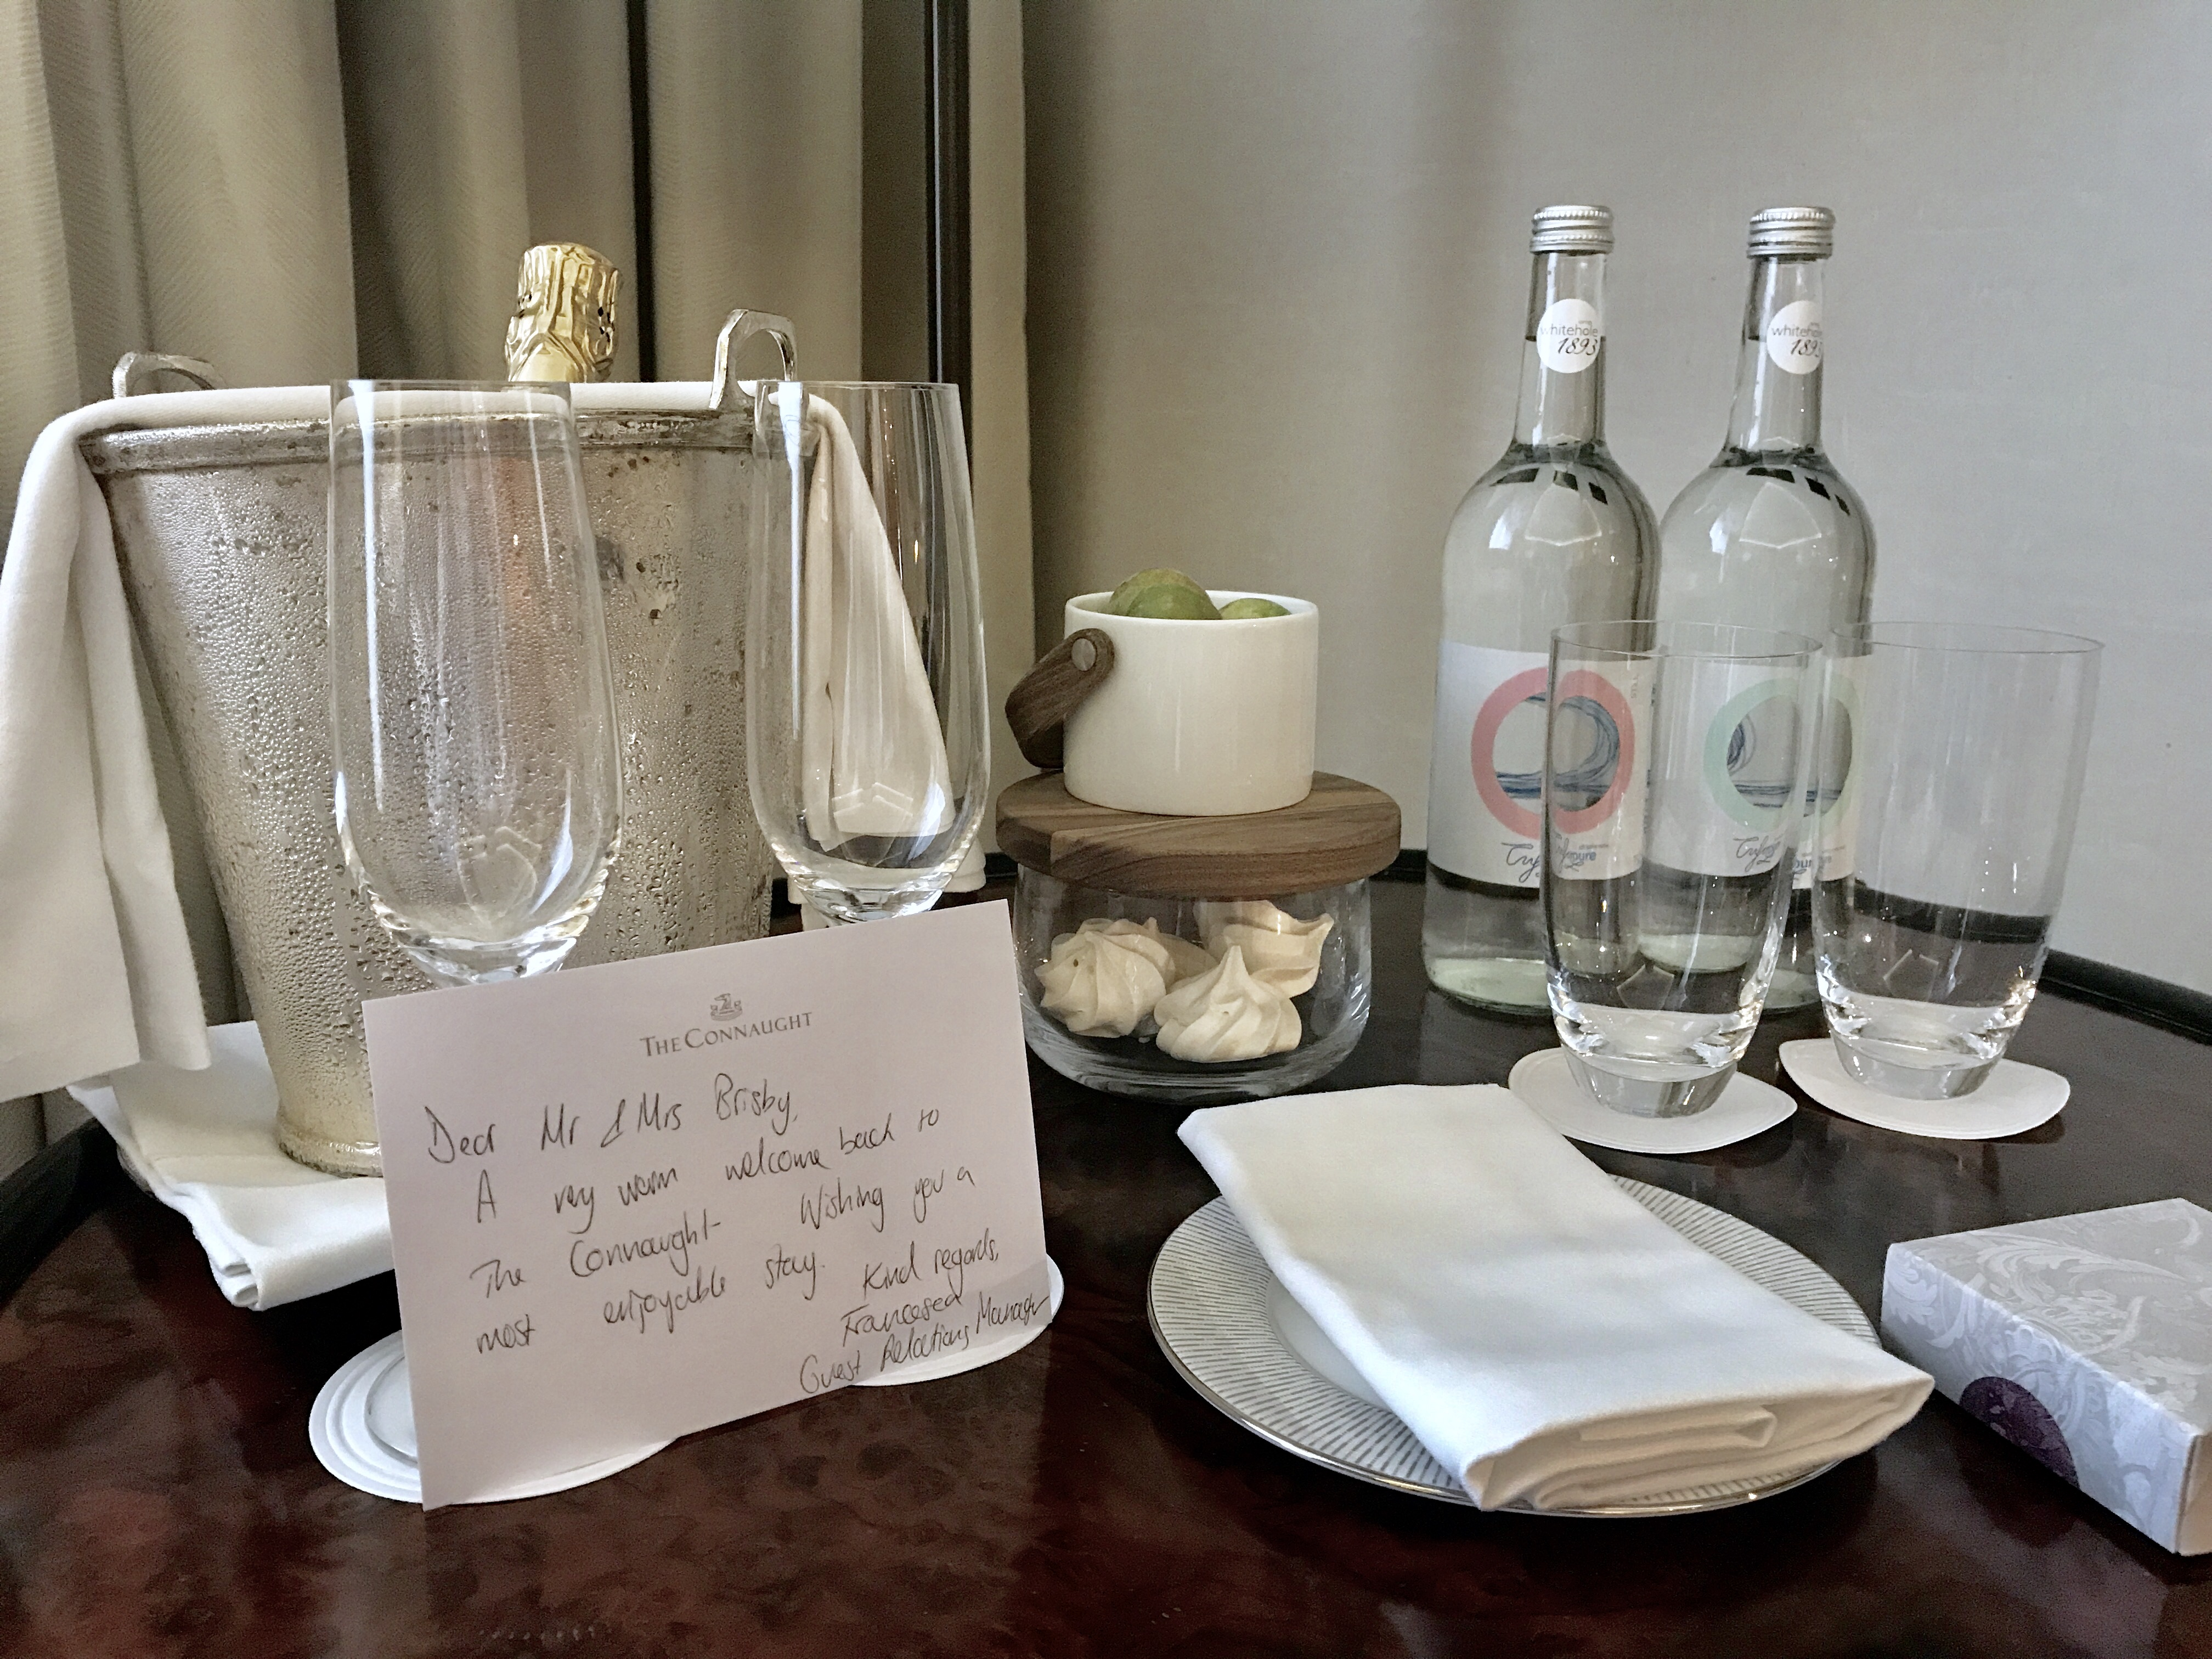 Welcome champagne at The Connaught Hotel